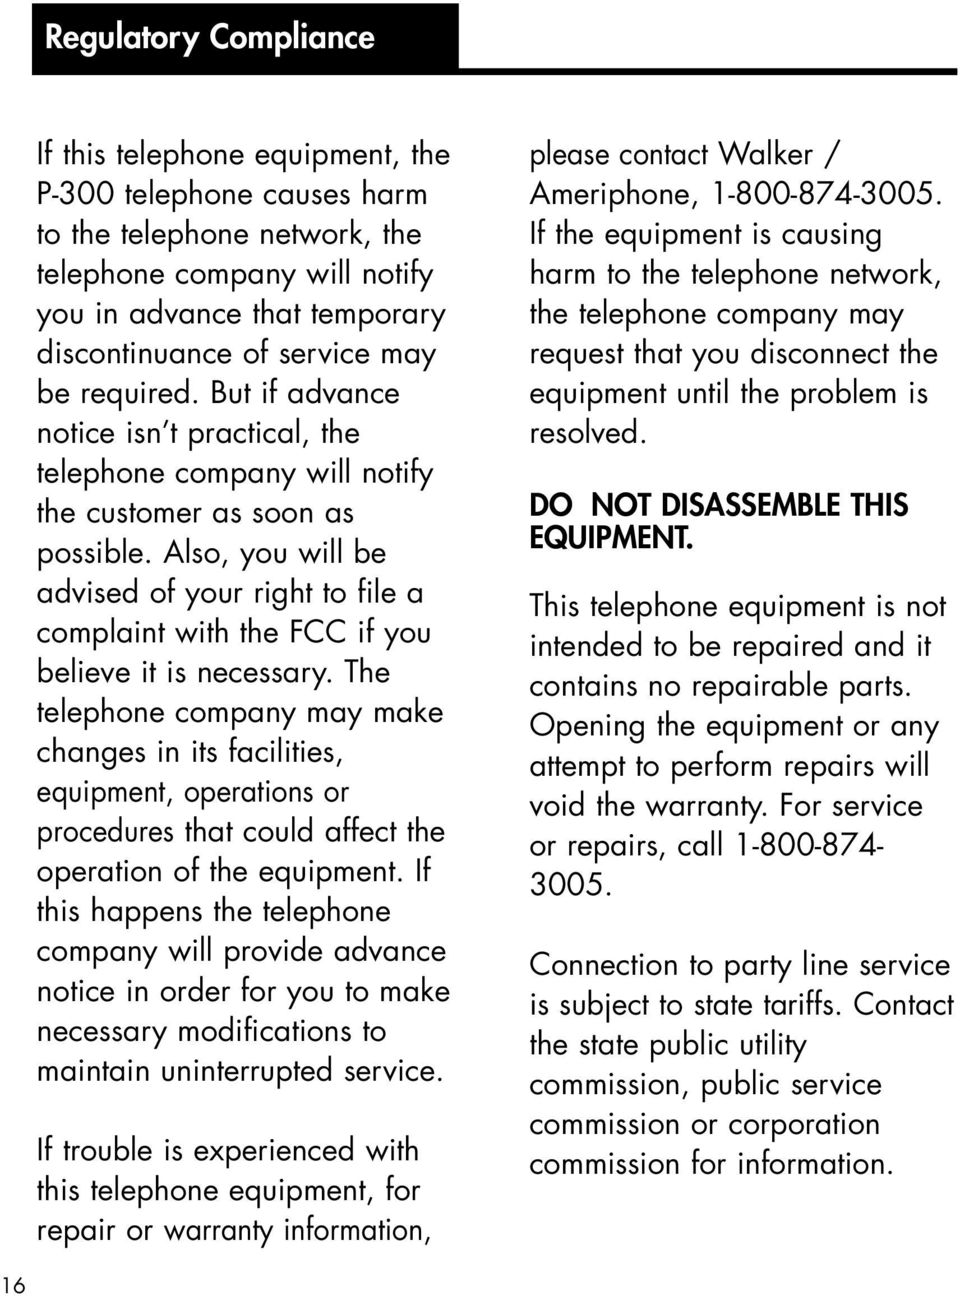 lso, you will be advised of your right to file a complaint with the FCC if you believe it is necessary.